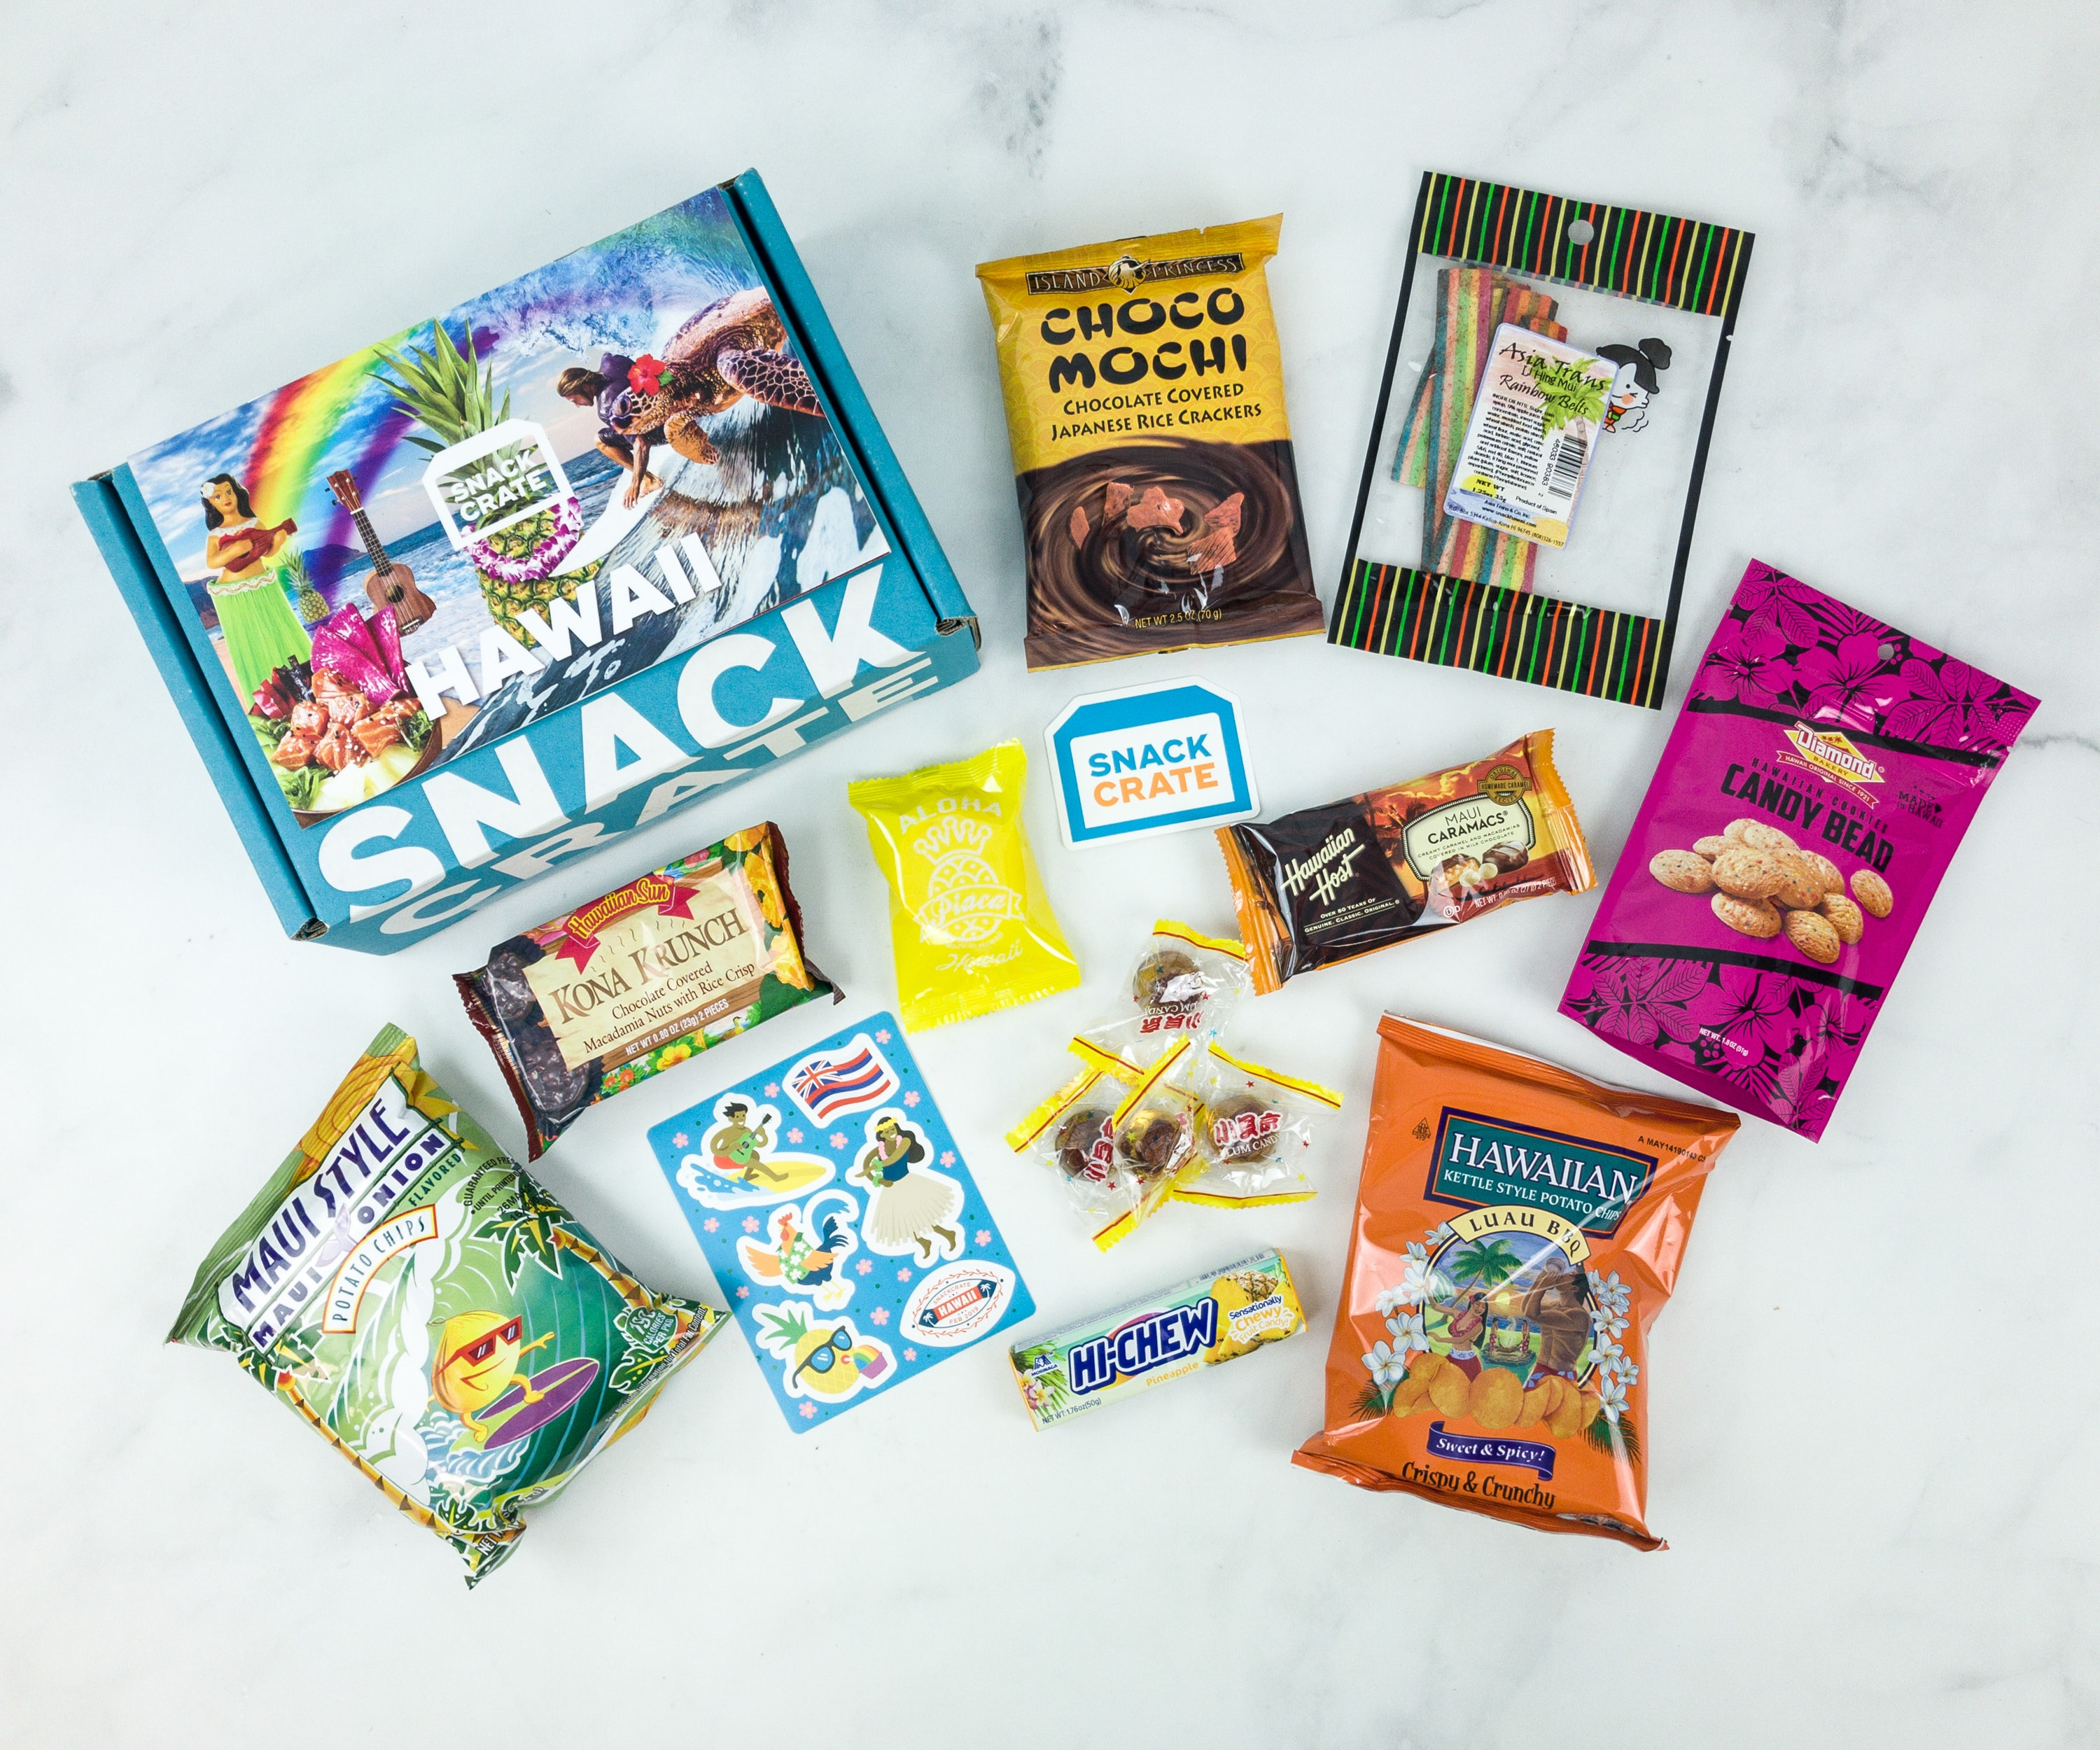 Snack Crate February 2019 Subscription Box Review & $10 Coupon